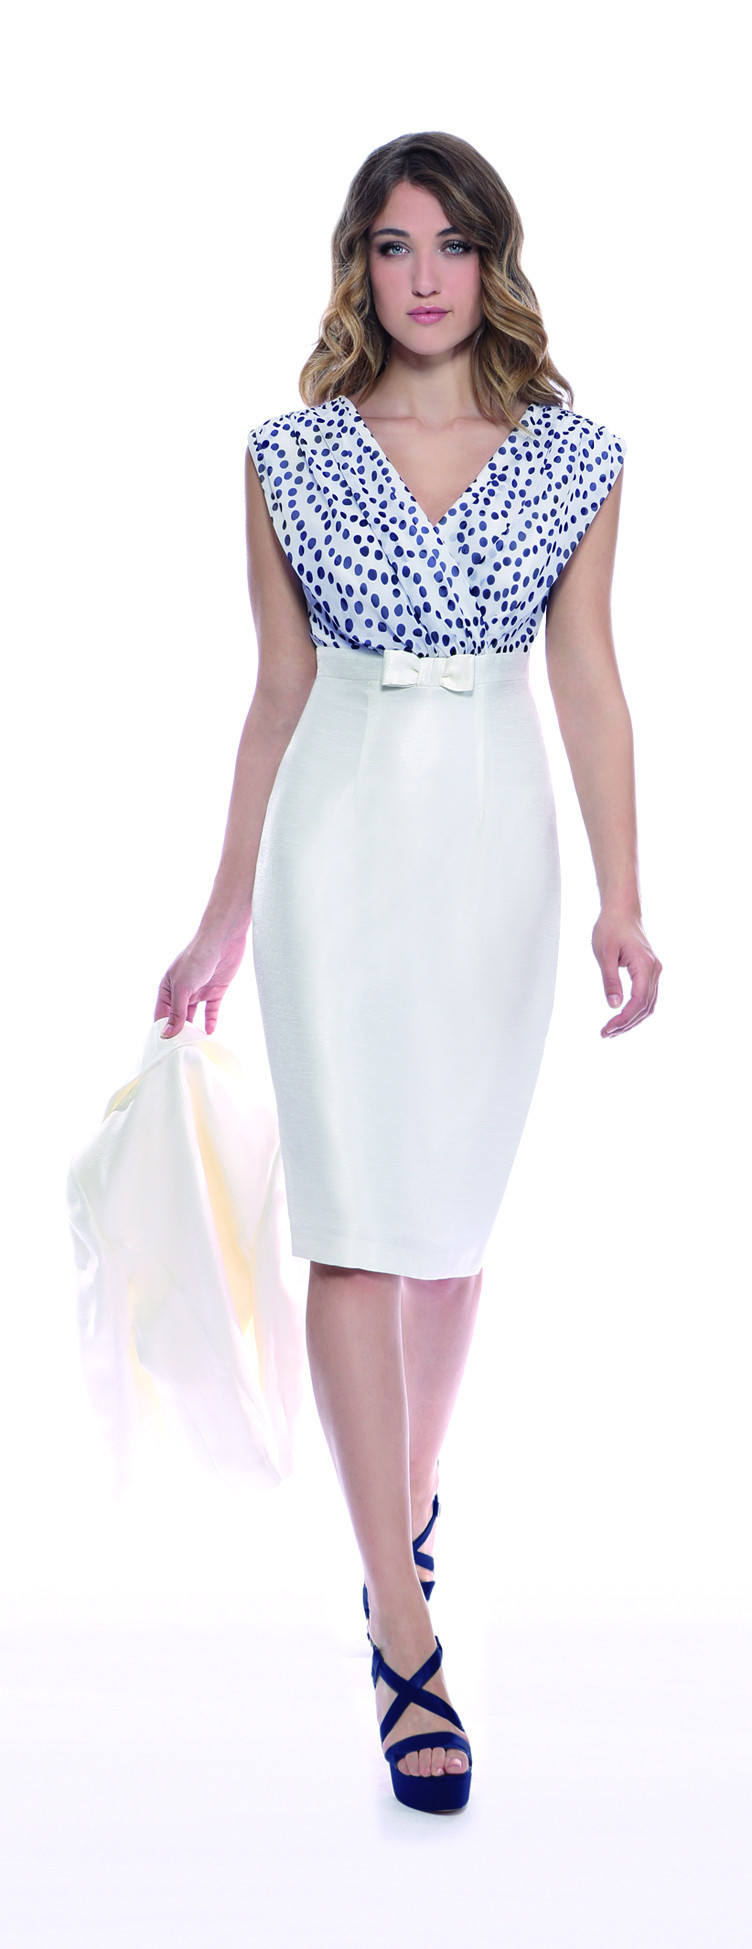 Ivory/Black Spot Bodice Dress - style: shift; neckline: v-neck; sleeve style: capped; fit: tailored/fitted; hip detail: fitted at hip; secondary colour: white; predominant colour: royal blue; occasions: evening; length: on the knee; sleeve length: sleeveless; pattern type: fabric; pattern size: standard; pattern: patterned/print; texture group: woven light midweight; fibres: viscose/rayon - mix; season: s/s 2016